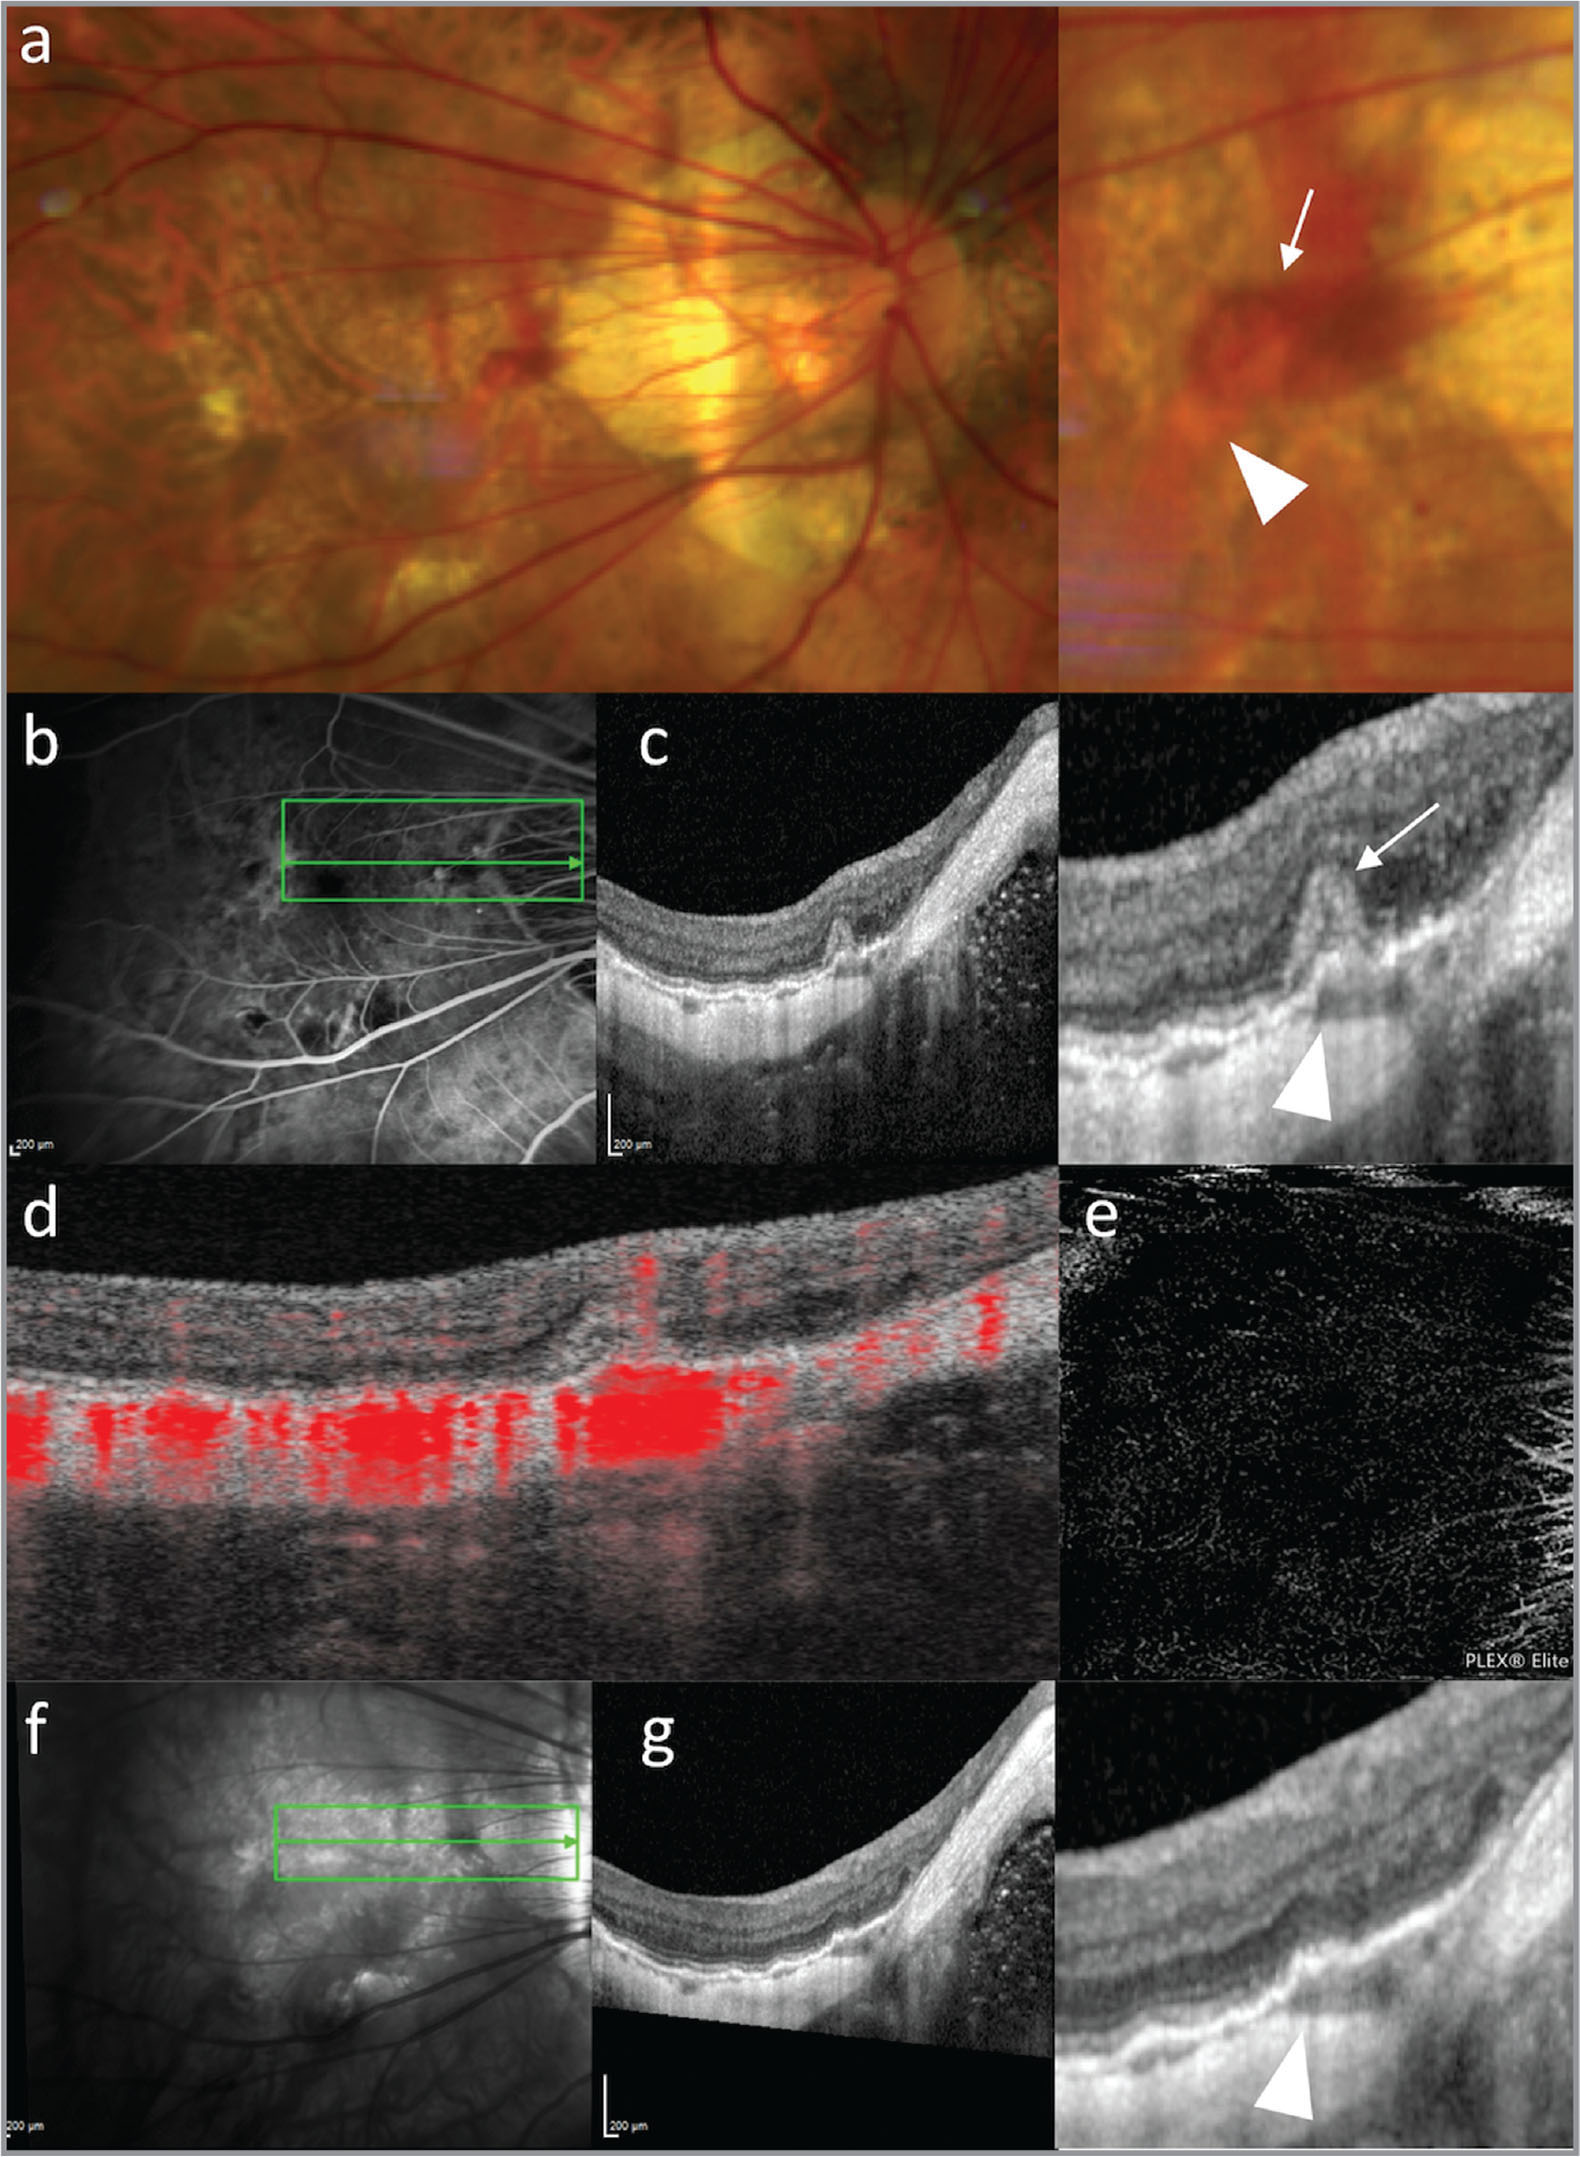 Multimodal imaging of retinal pigment epithelium (RPE) humps associated with myopic simple bleeding. Fundus photography illustrated the presence of a macular hemorrhage (arrow) over the course of a large choroidal vessel (arrowhead). The hemorrhage did not show important leakage on fluorescein angiography (b) and corresponded to subretinal hyperreflective material on structural optical coherence tomography (OCT) (c; arrow), whereas the underlying large choroidal vessel corresponded to an RPE hump (c; arrowhead). B-scan (d) and en face (e) OCT angiography excluded the presence of choroidal neovascularization. After 2 weeks, near-infrared fundus reflectance (f) and OCT (g) showed complete resolution of the macular hemorrhage over the RPE hump (arrowhead).